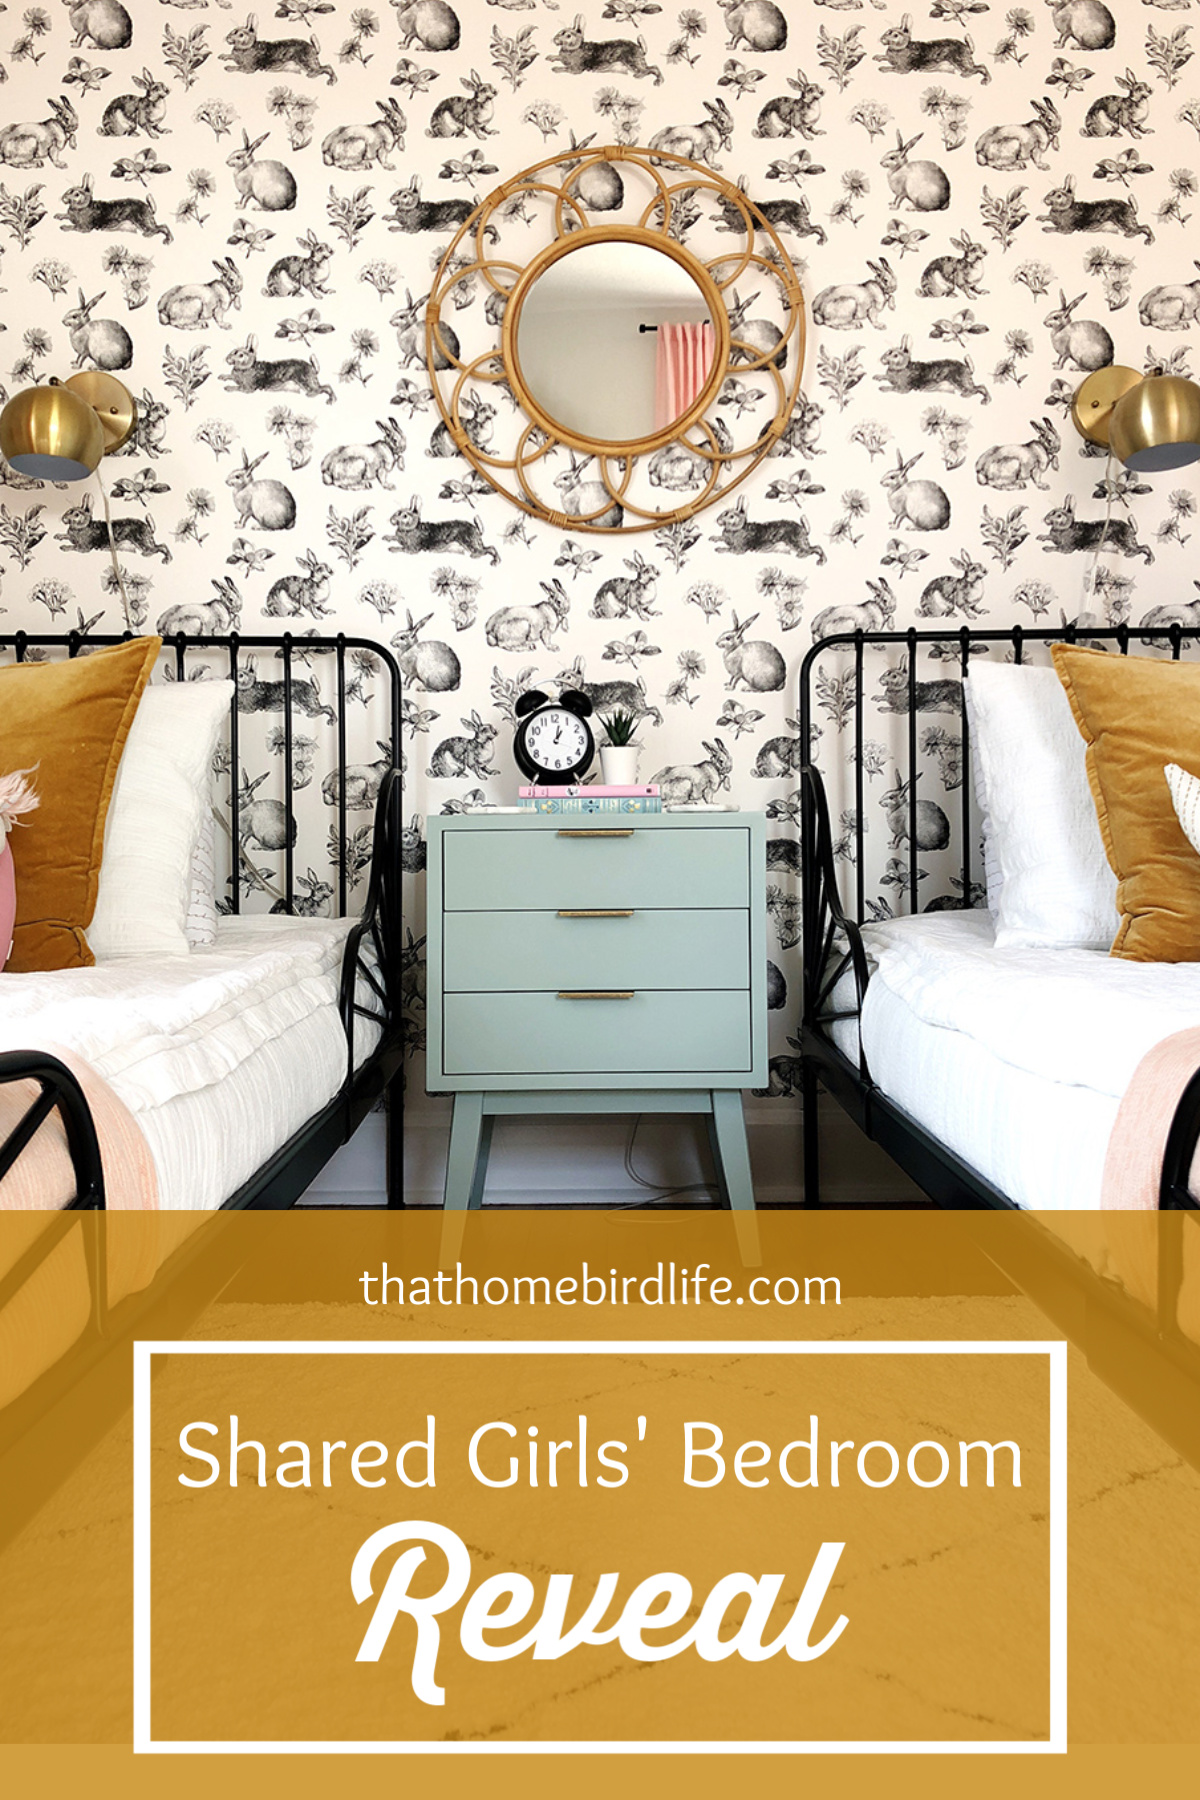 Girls' Bedroom Reveal - Guest Participant of the One Room Challenge - That Homebird Life Blog #kidsroom #kidsdecor #wallpaper